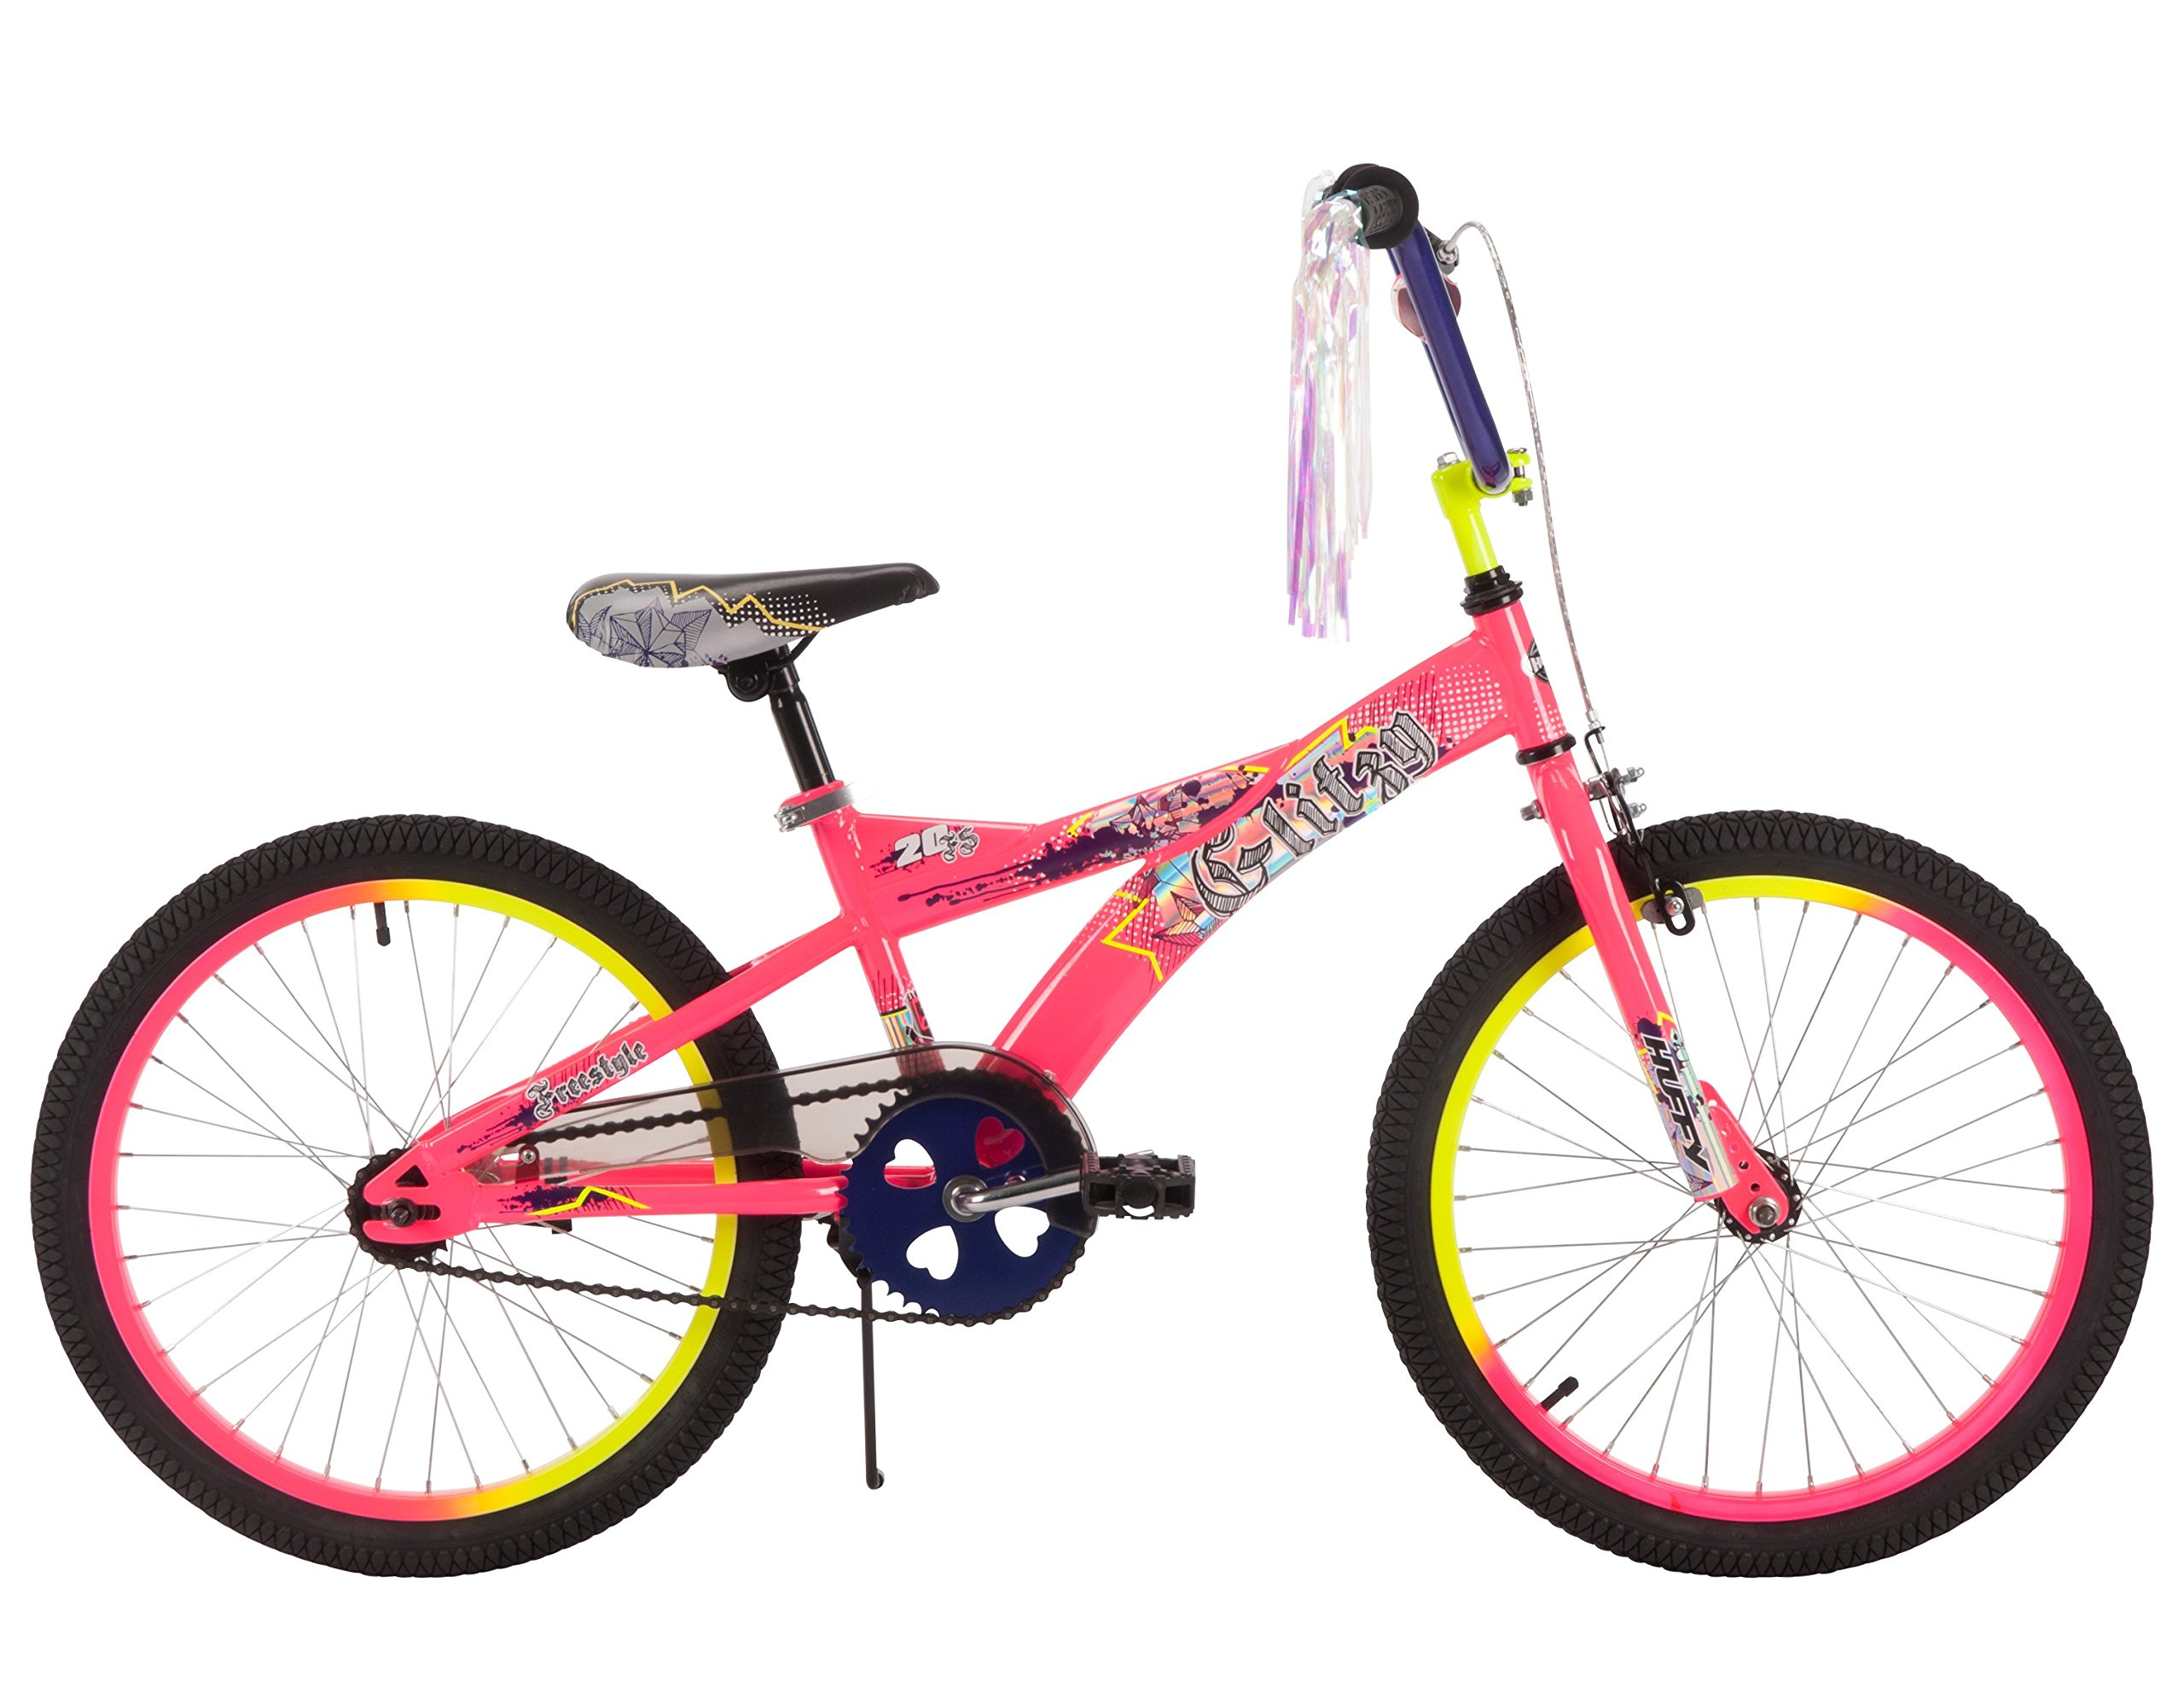 20'' Huffy Glitzy Girls' Bike, Pink by Huffy (Image #1)